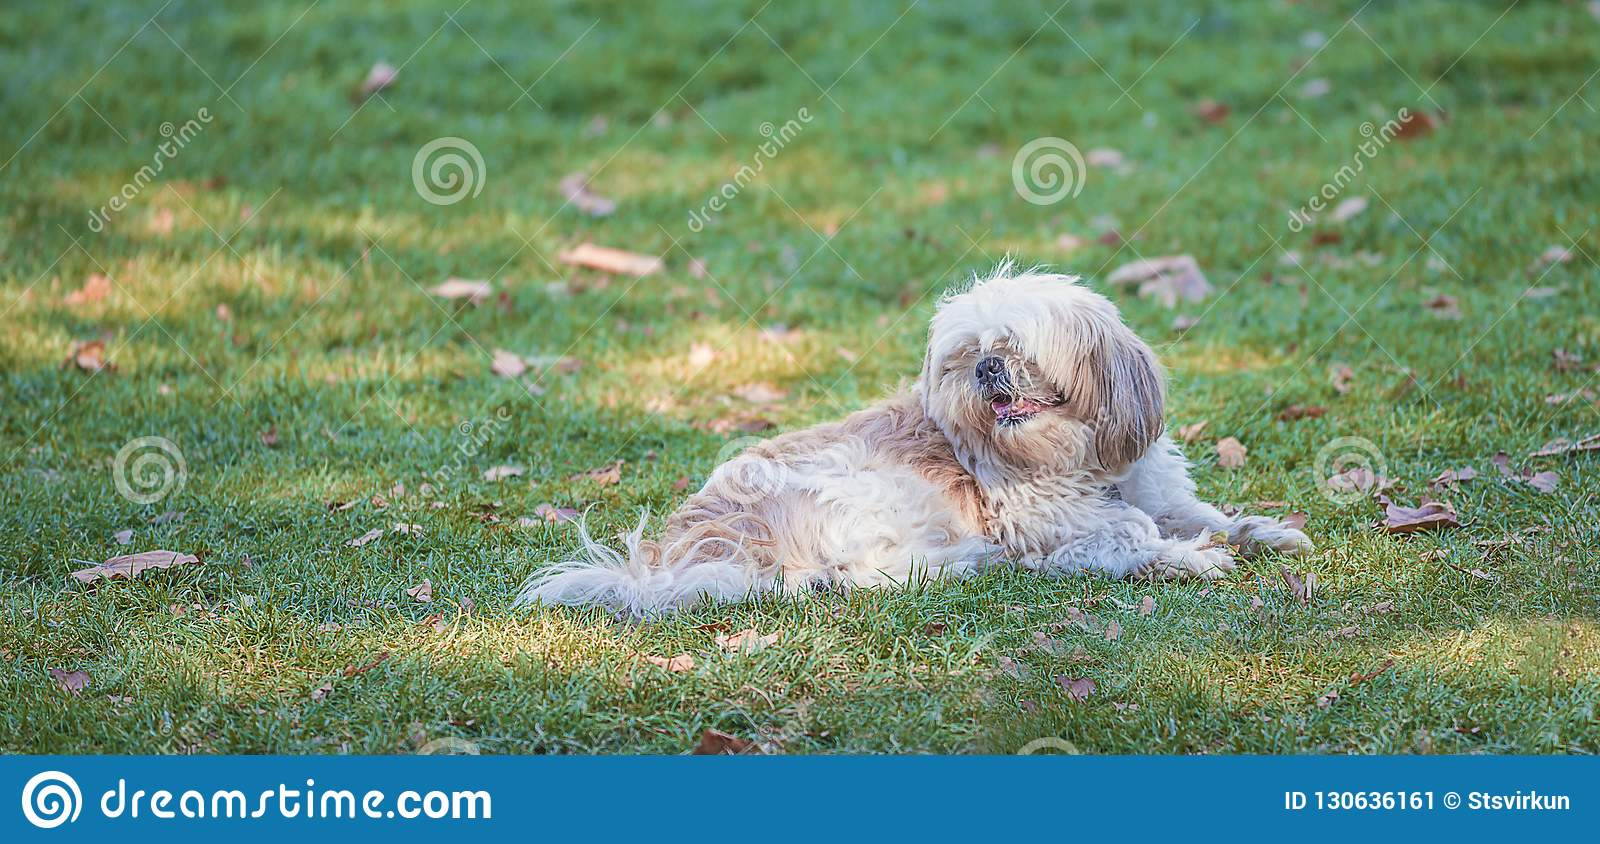 Beautiful dog lying on the green grass